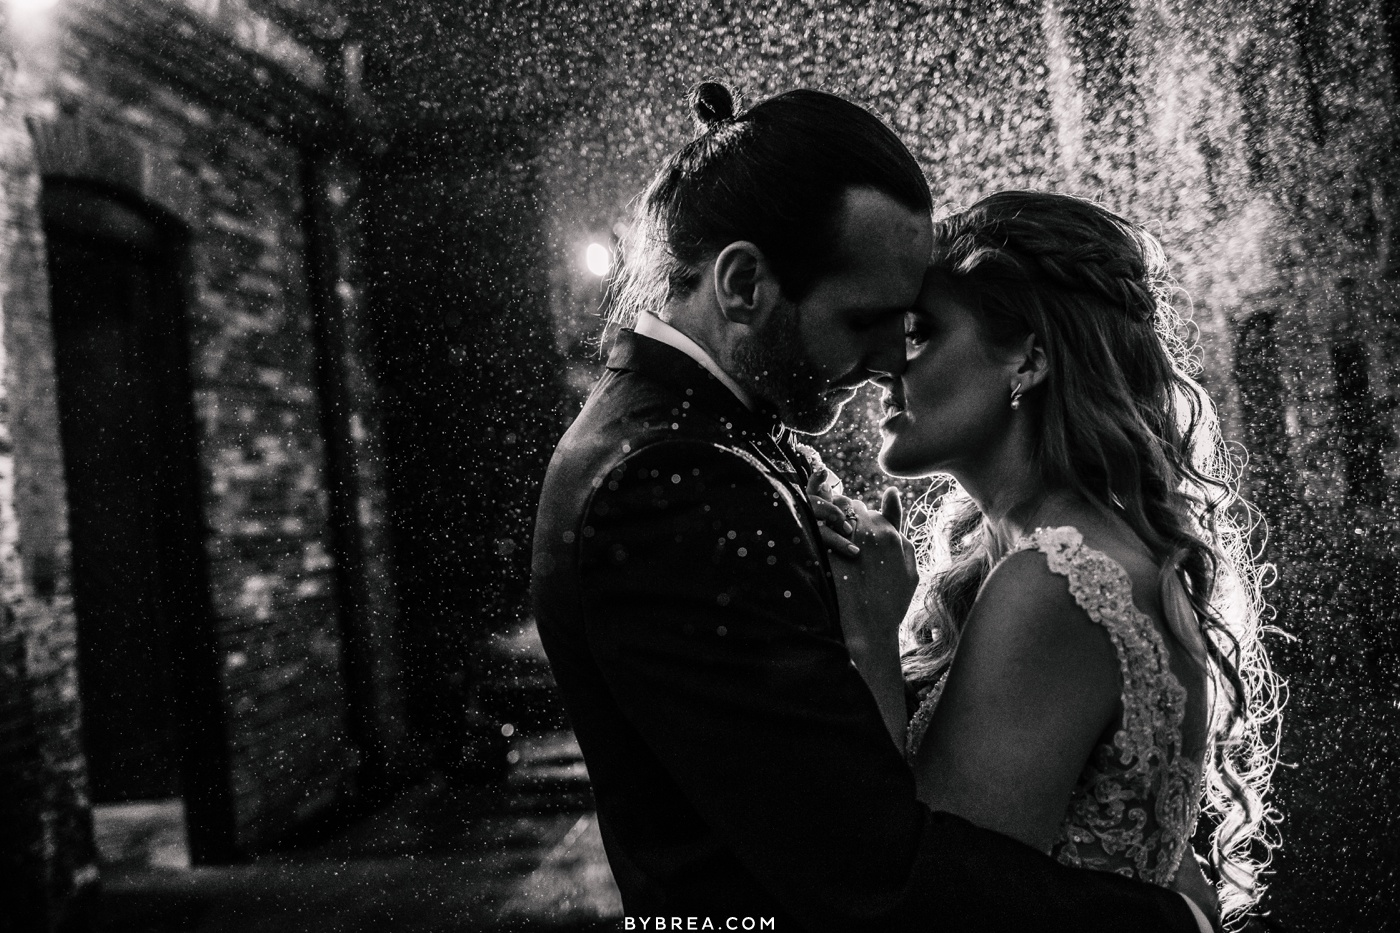 Bride and groom night time rain portrait in Baltimore